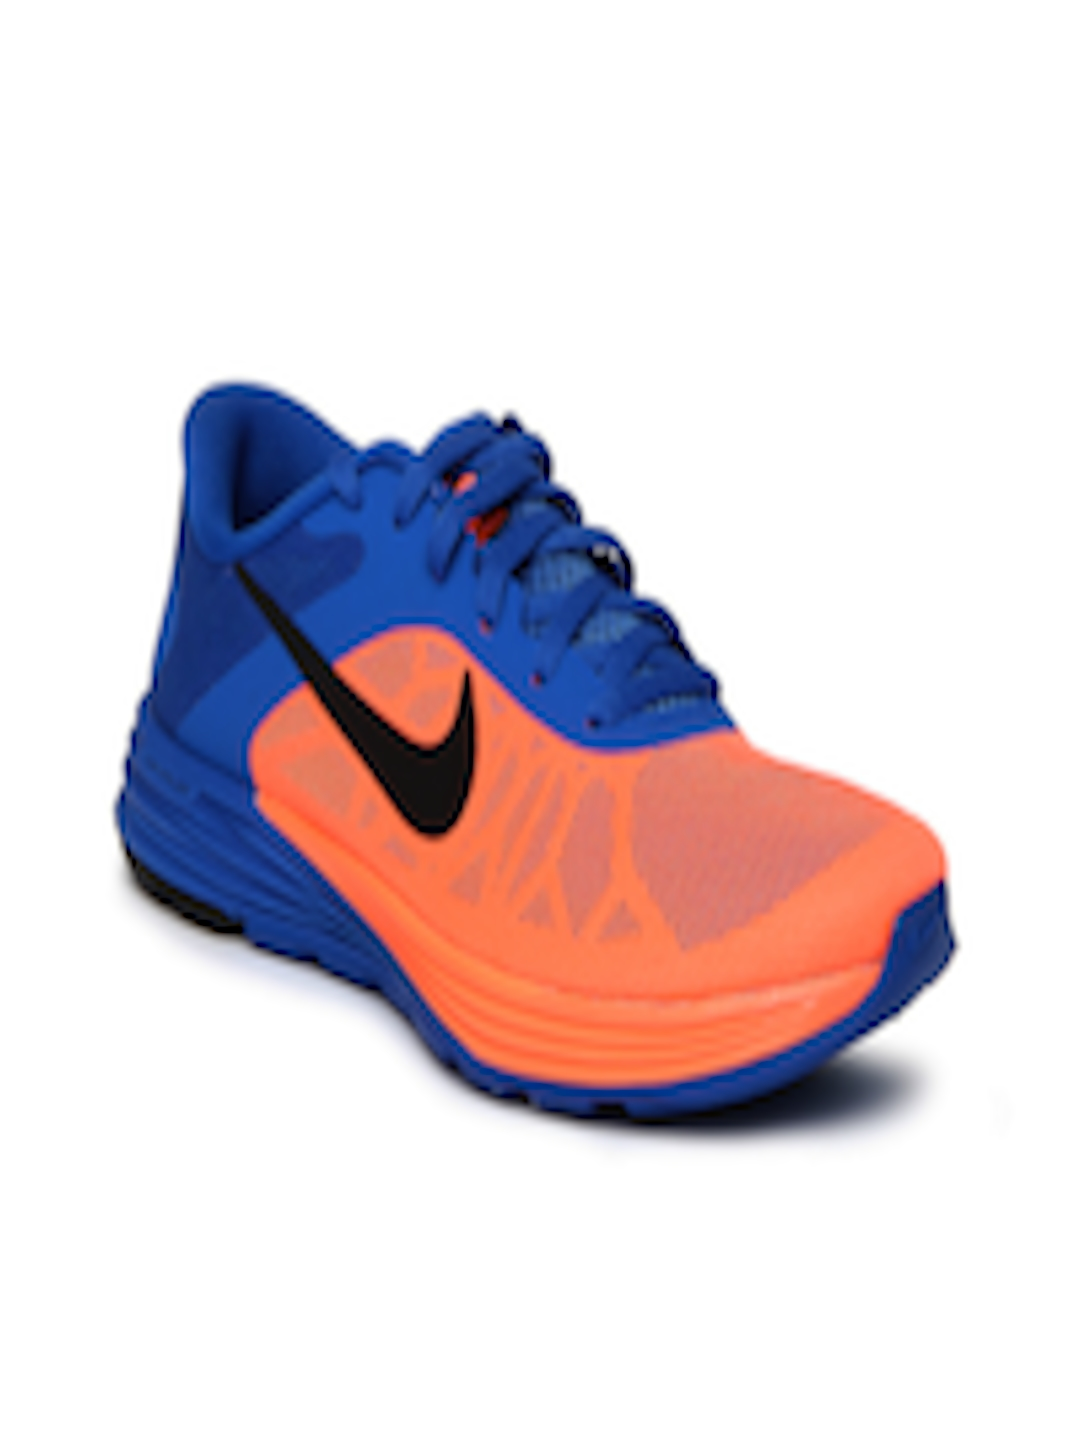 quality design 1a0e4 aabcc Buy Nike Blue Lunarlaunch Running Sports Shoes - Sports Shoes for Women  379471   Myntra